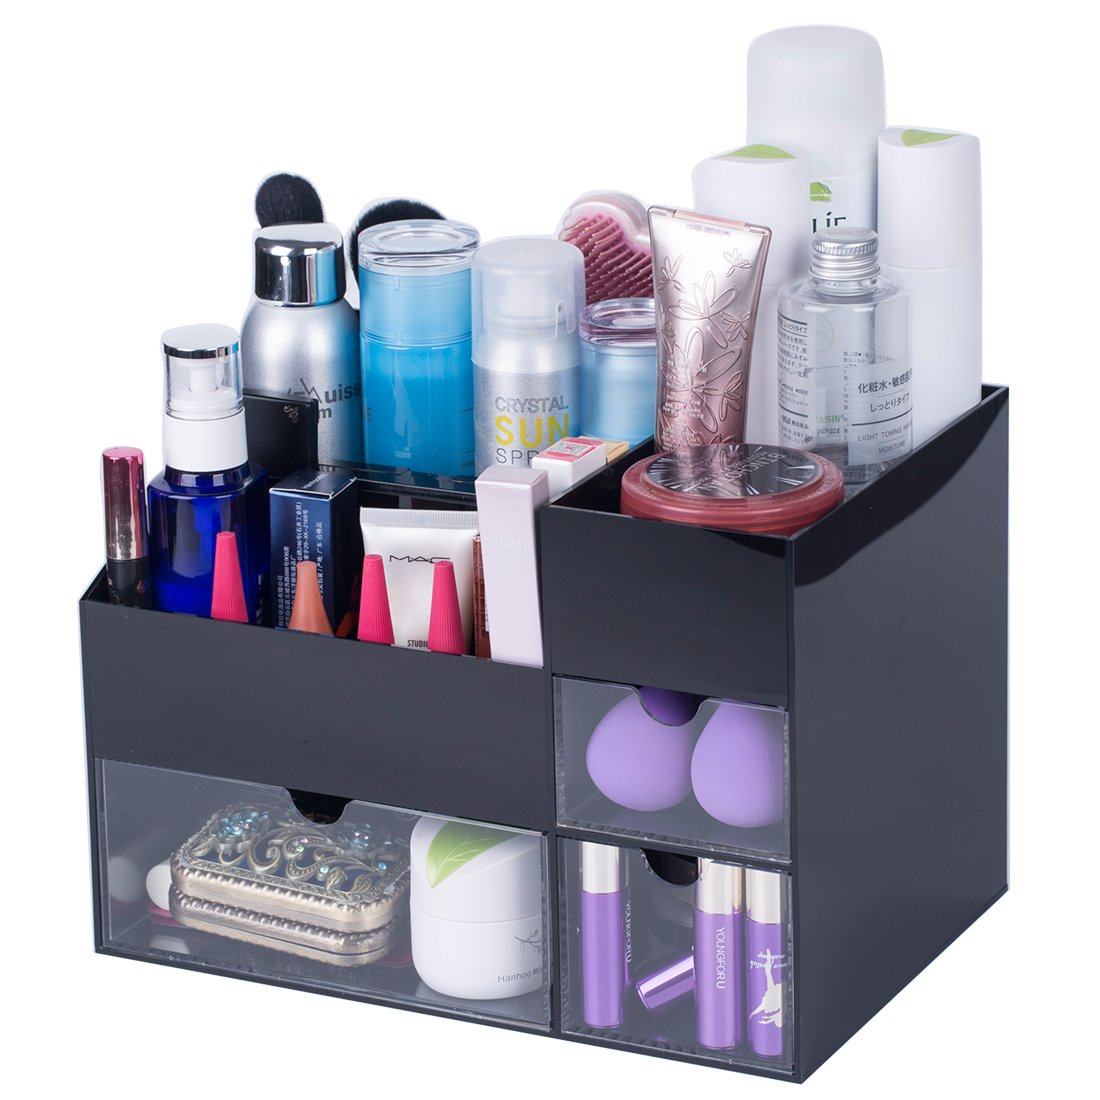 Newslly Black Large Acrylic Makeup Organizer 3 Transparent Drawers Cosmetic Jewelry Storage Display Box with 5 Compartment for Bathroom Bedroom Vanity Countertop Table Office Desk